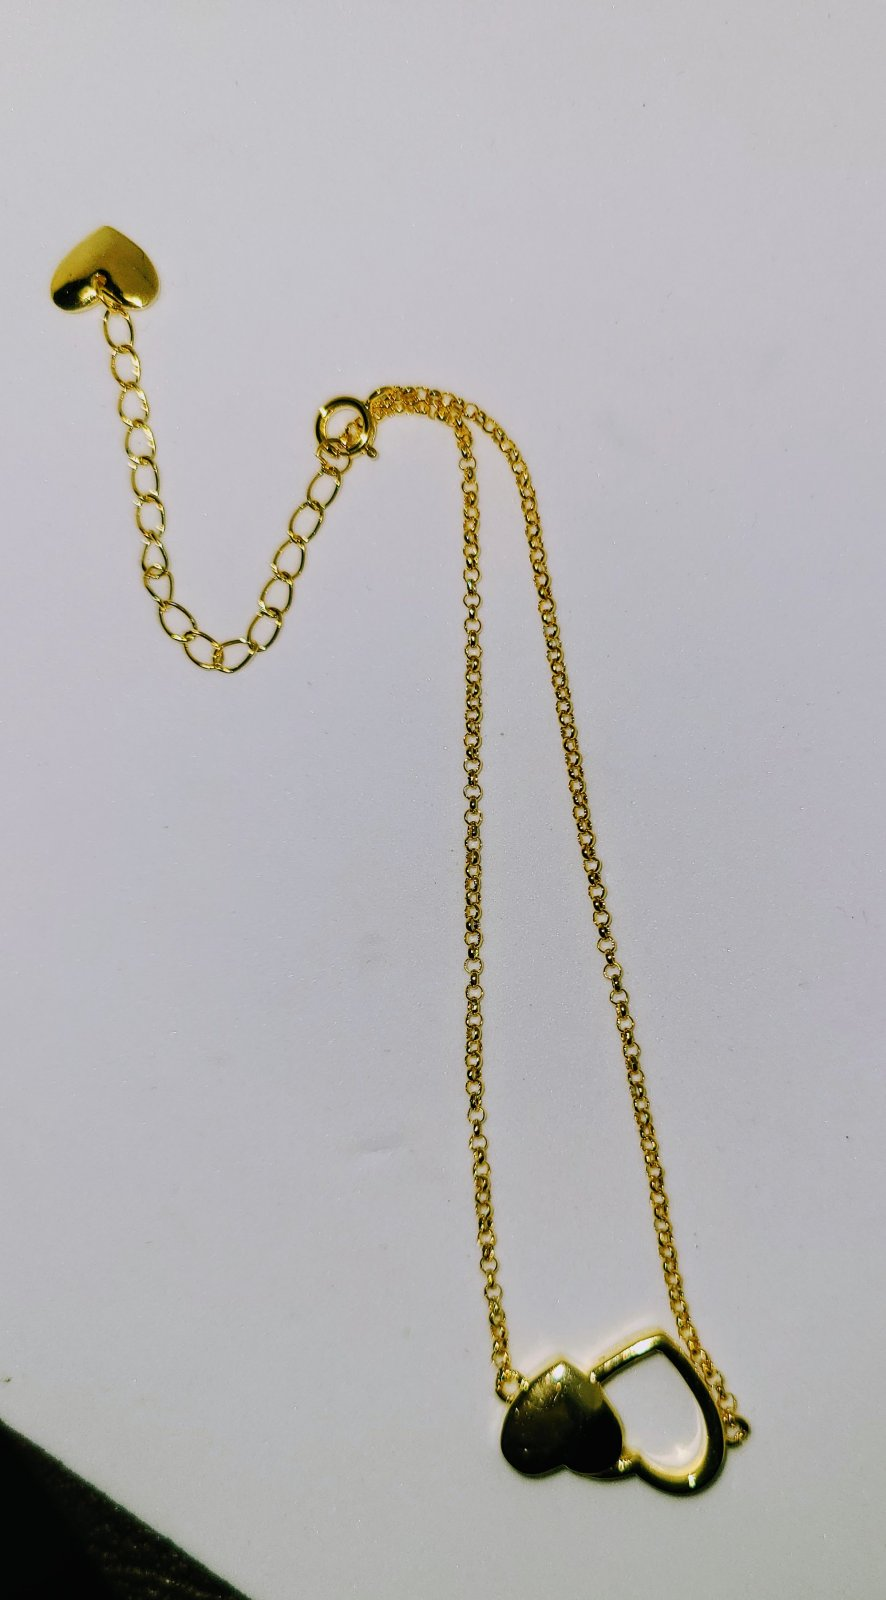 Anklet #7 - Simple Double Heart Charm